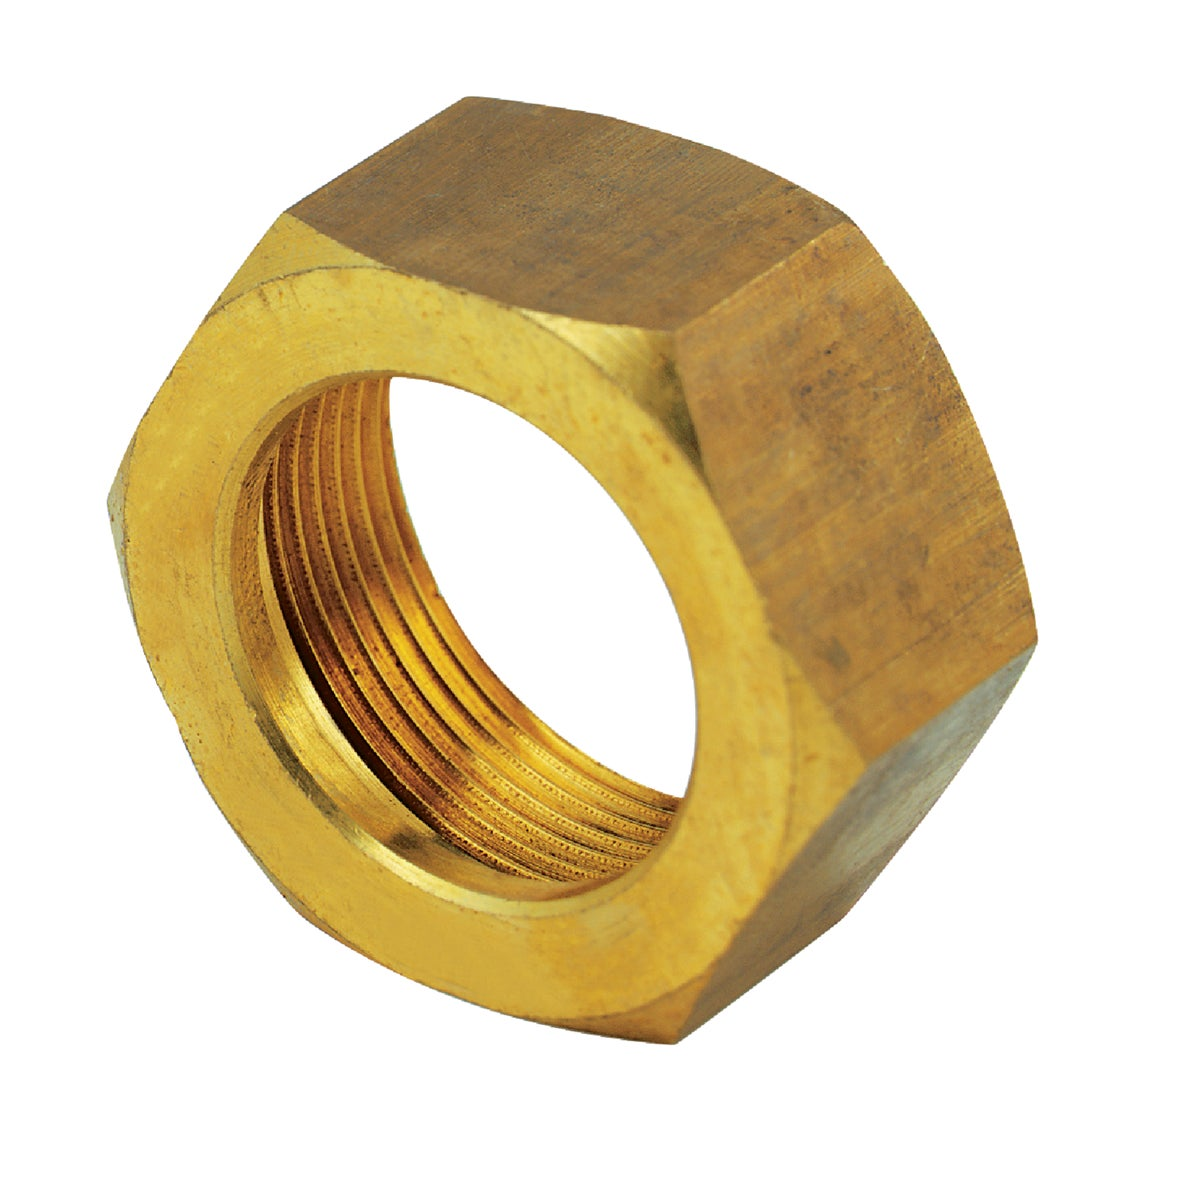 "7/8"" COMPRESSION NUT - 50061-14 by Anderson Metals Corp"